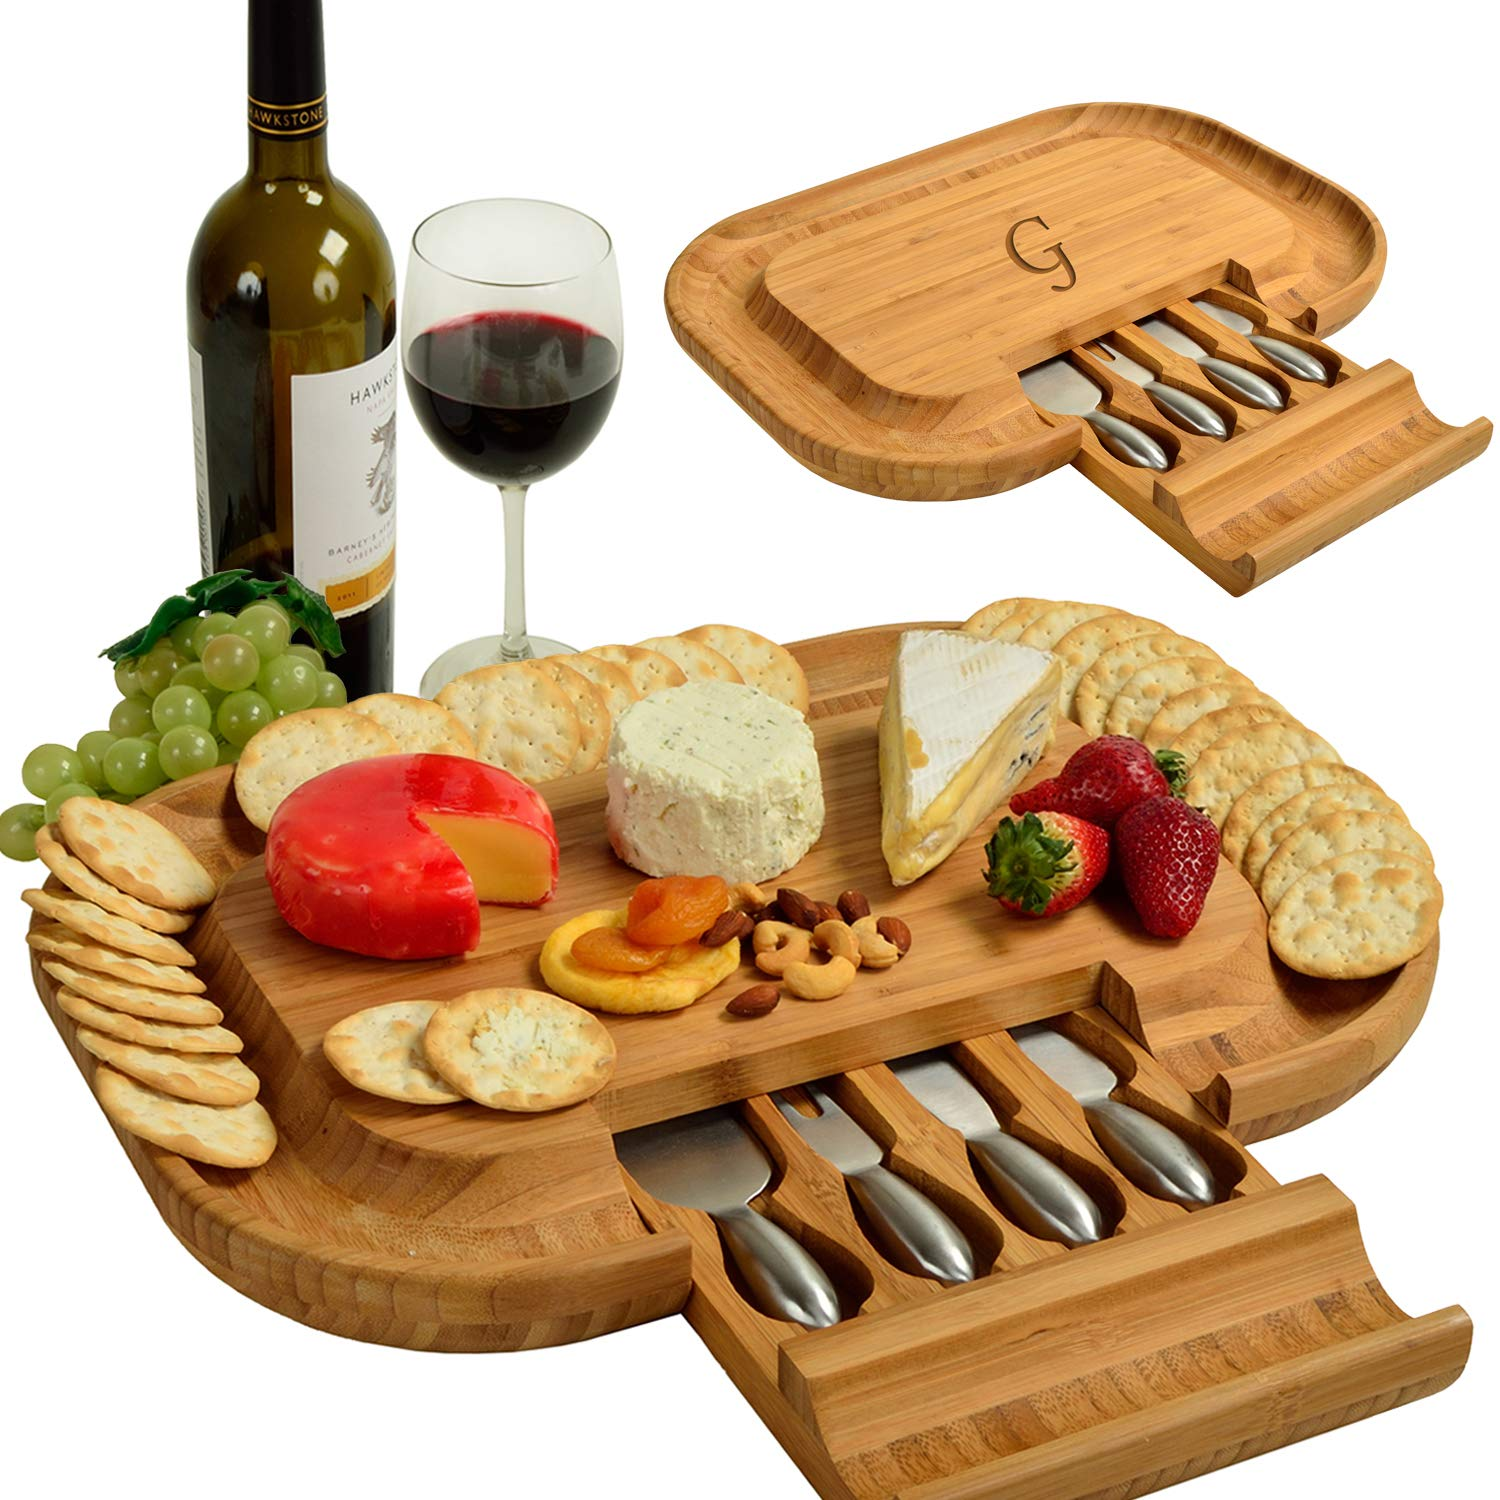 Picnic at Ascot Personalized Monogrammed Engraved Bamboo Cutting Board for Cheese & Charcuterie - includes Knife Set & Cheese Markers- Designed & Quality Checked in USA by Picnic at Ascot